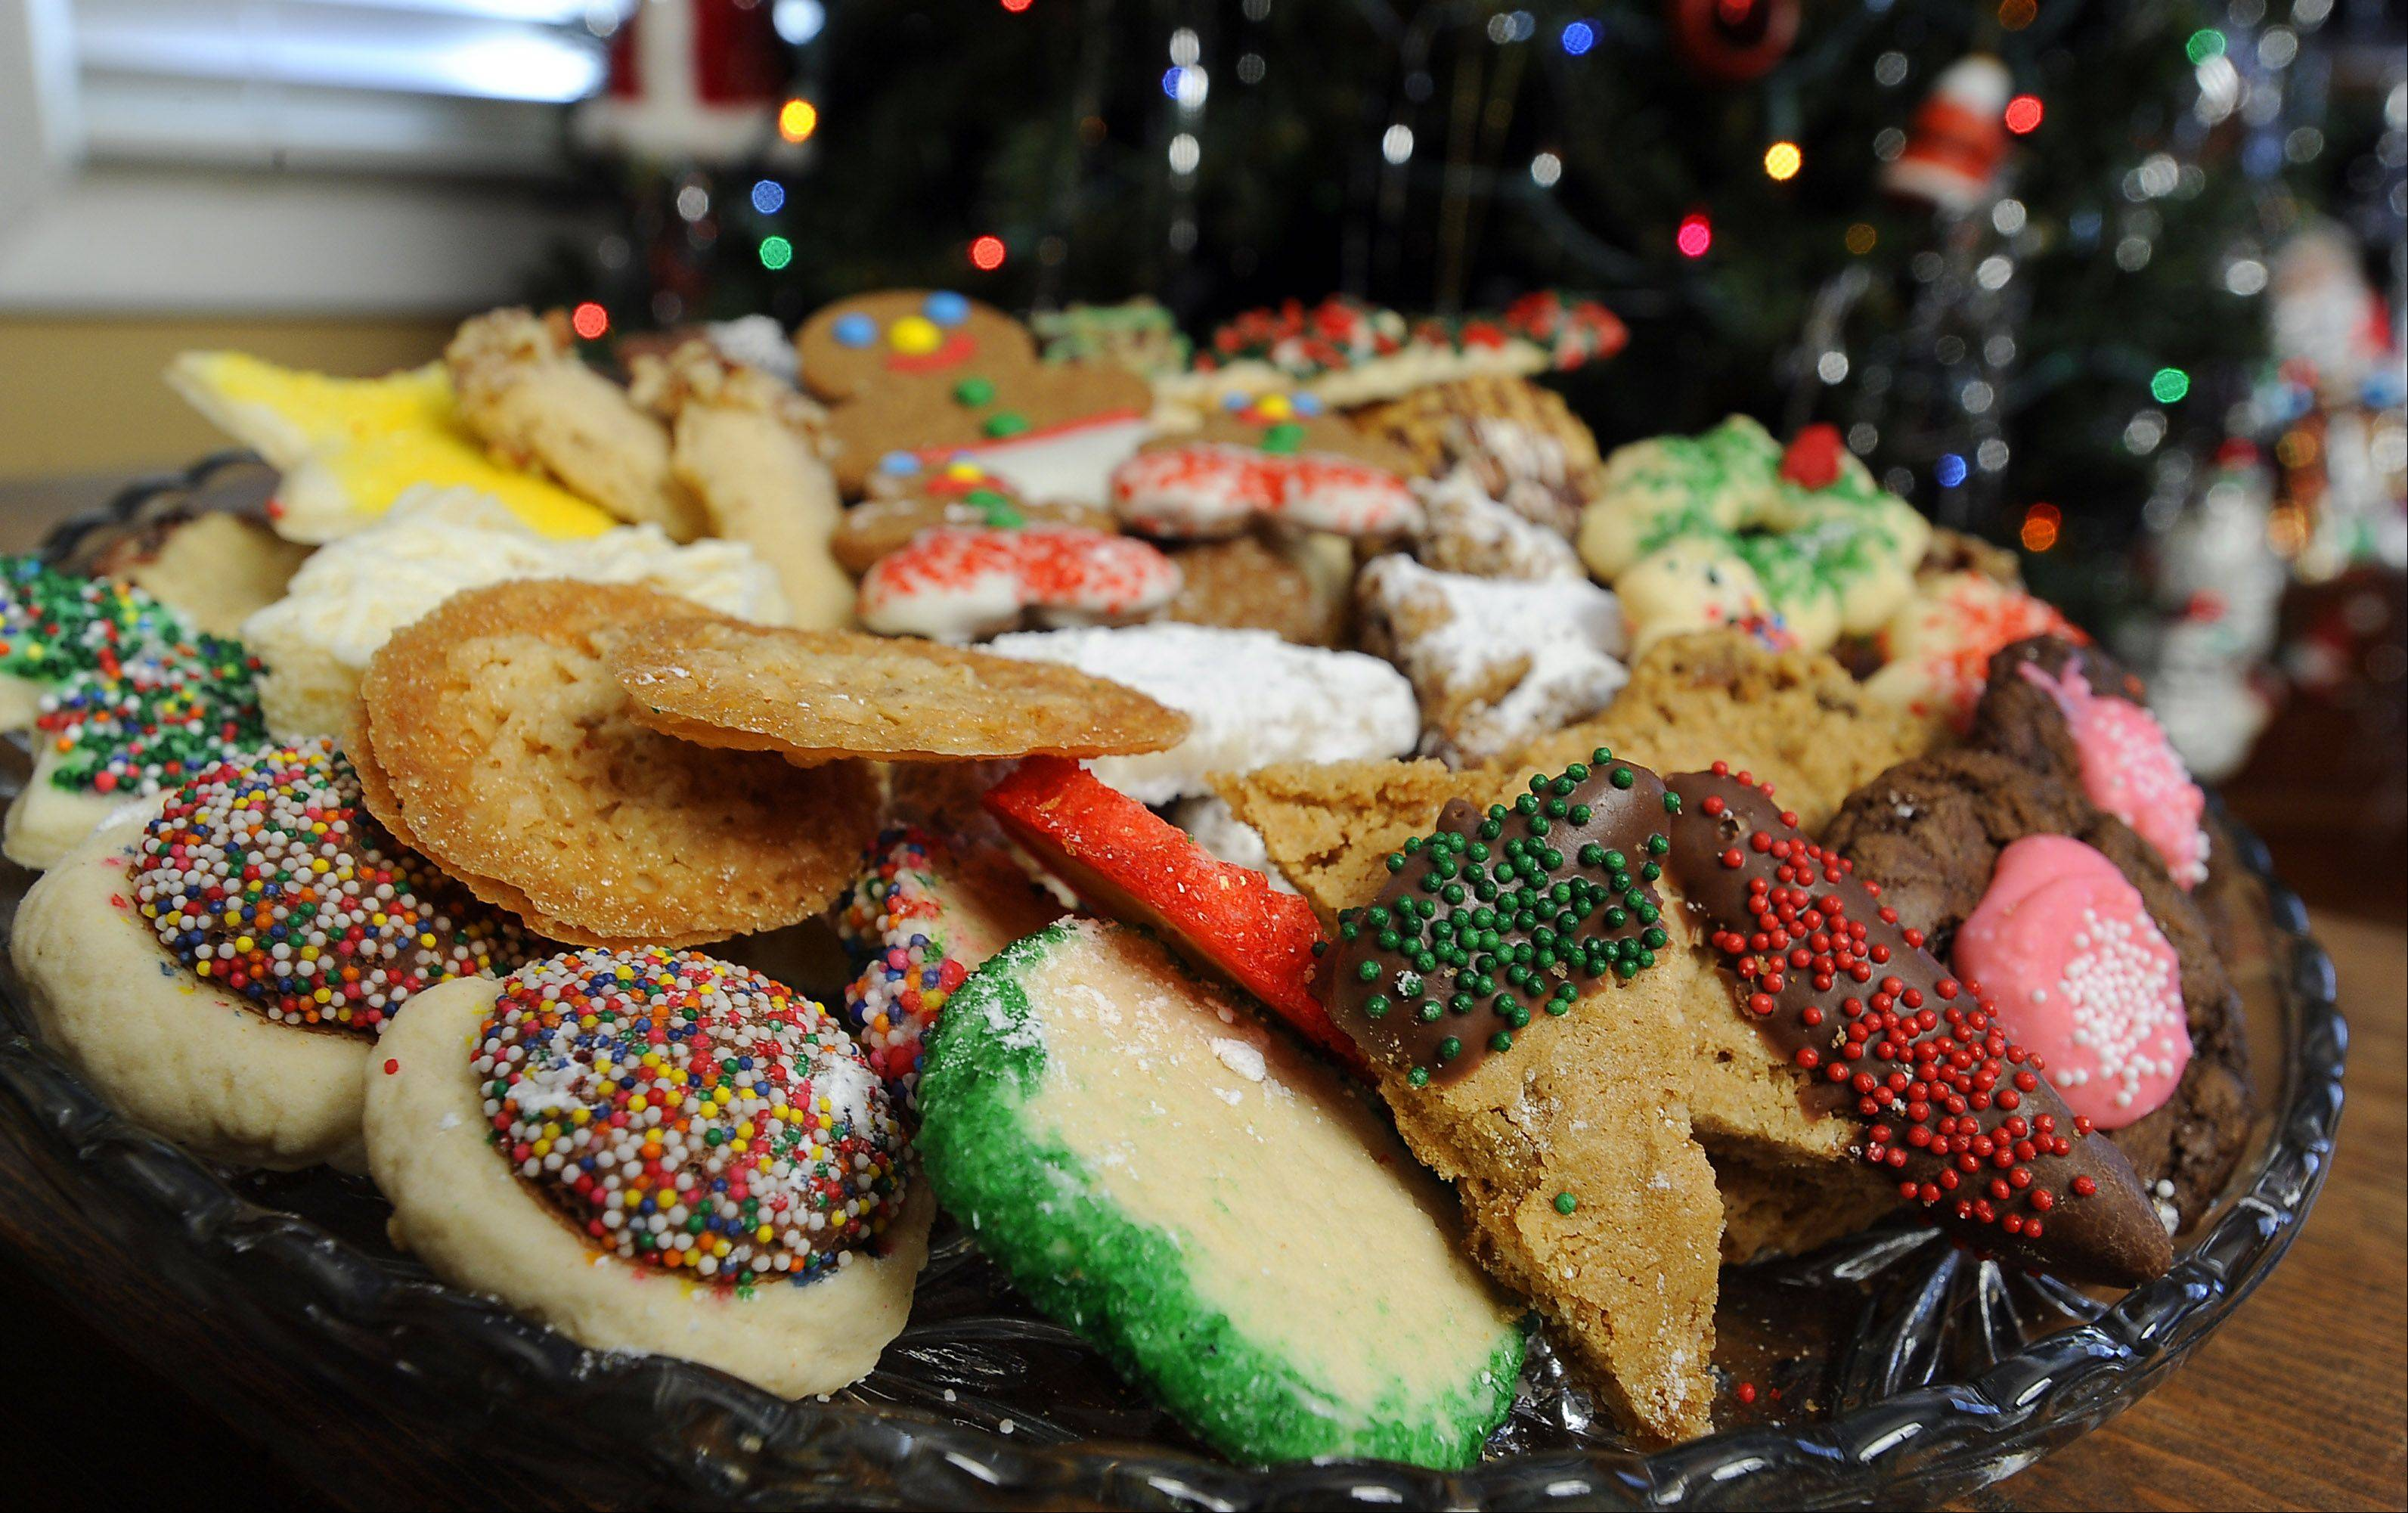 The kitchen of Laverne Hall's Elk Grove Village home overflows with cookies this time of year. She creates lavish cookie trays to give to family and friends.